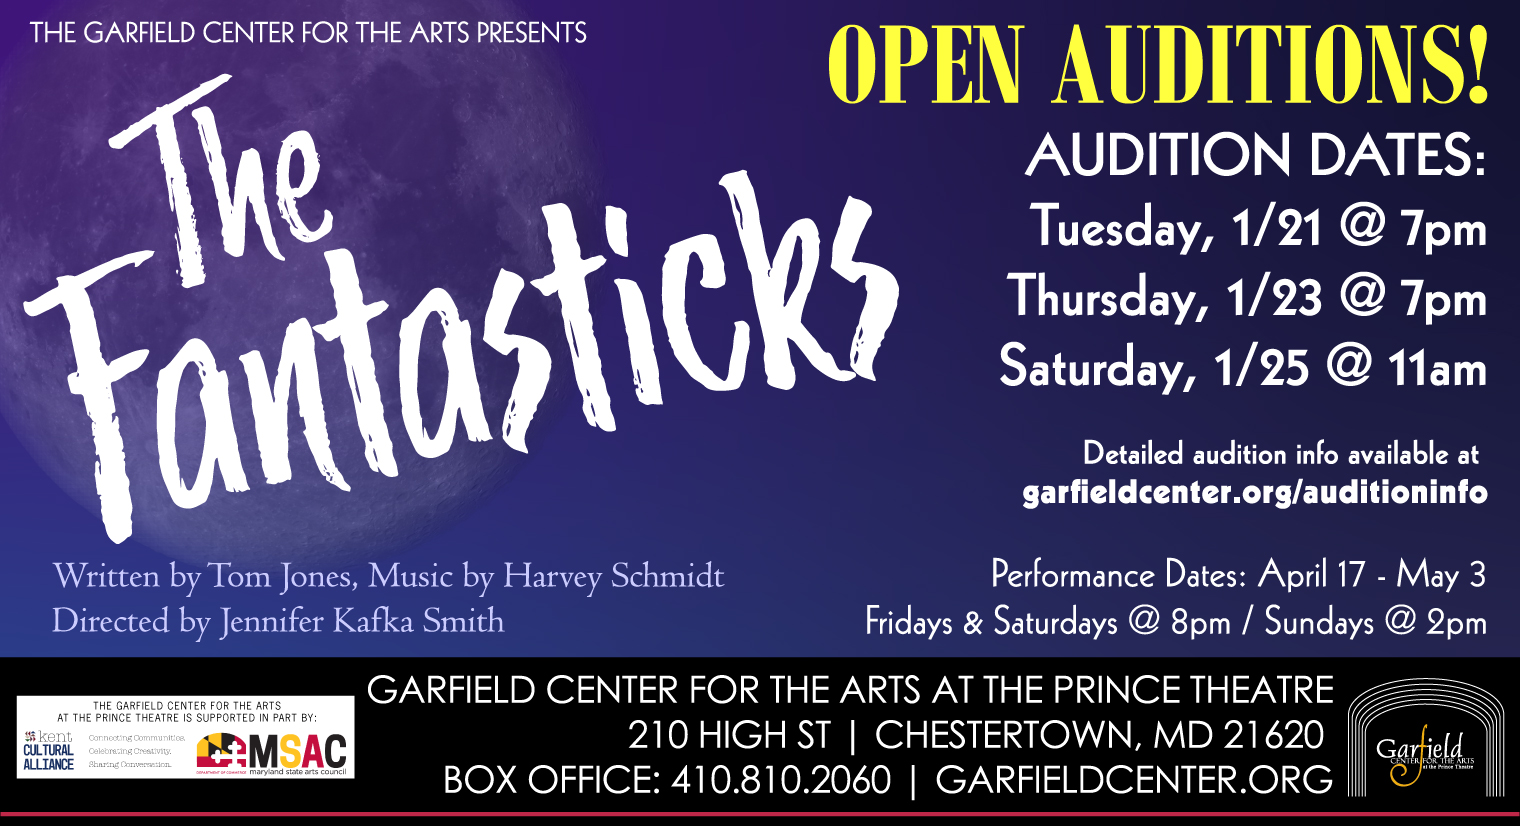 Open auditions for The Fantasticks at the Garfield